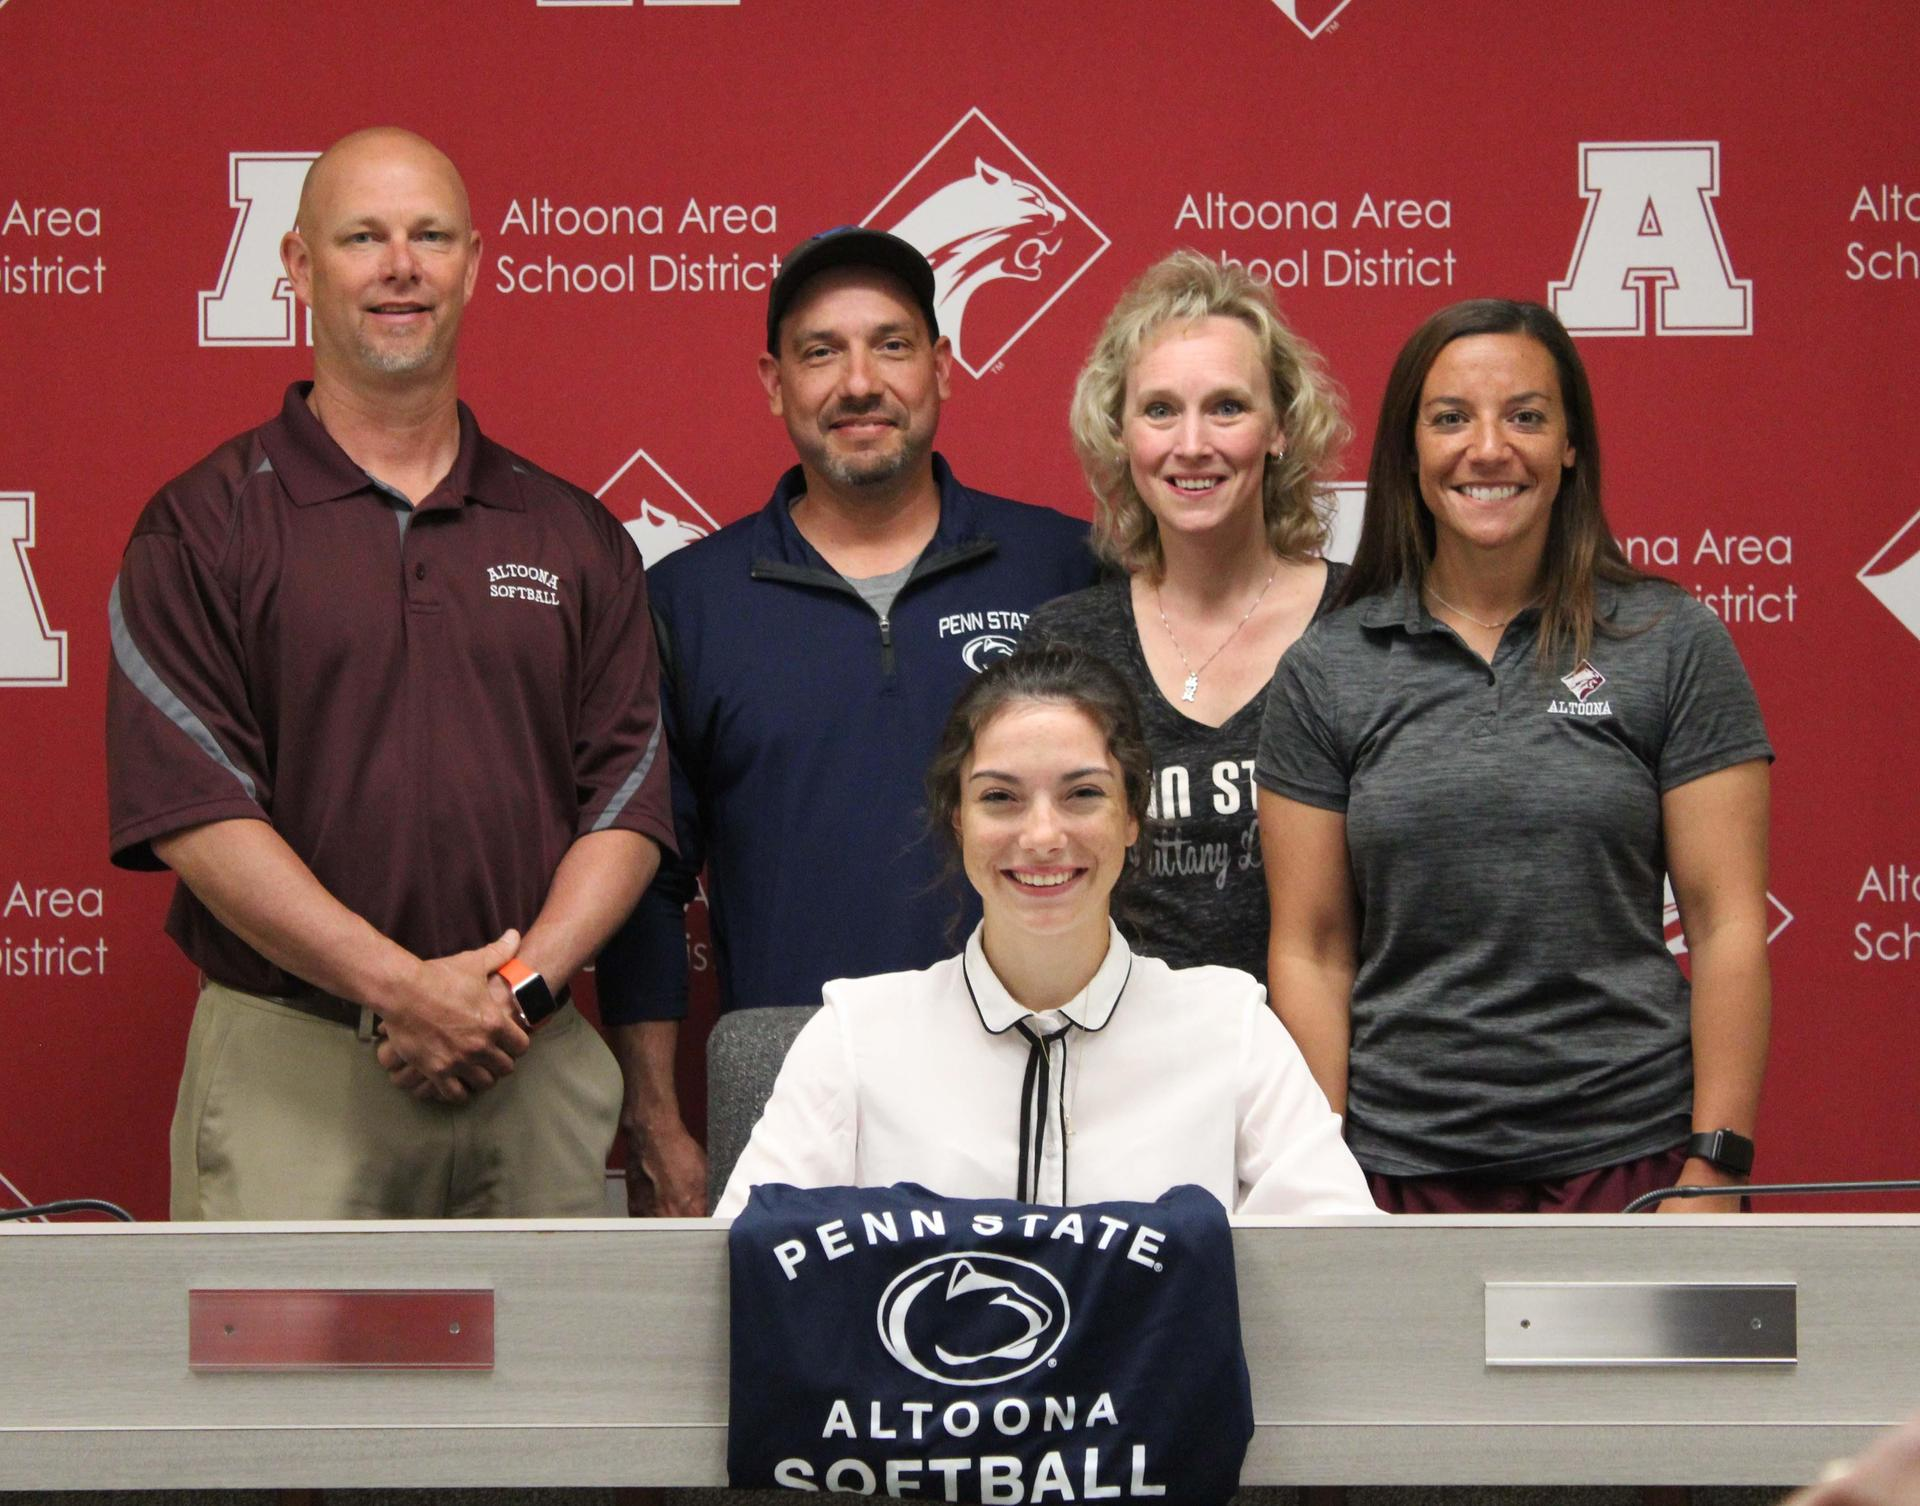 Kierra Moist, Coach Benson and Beagle and Family